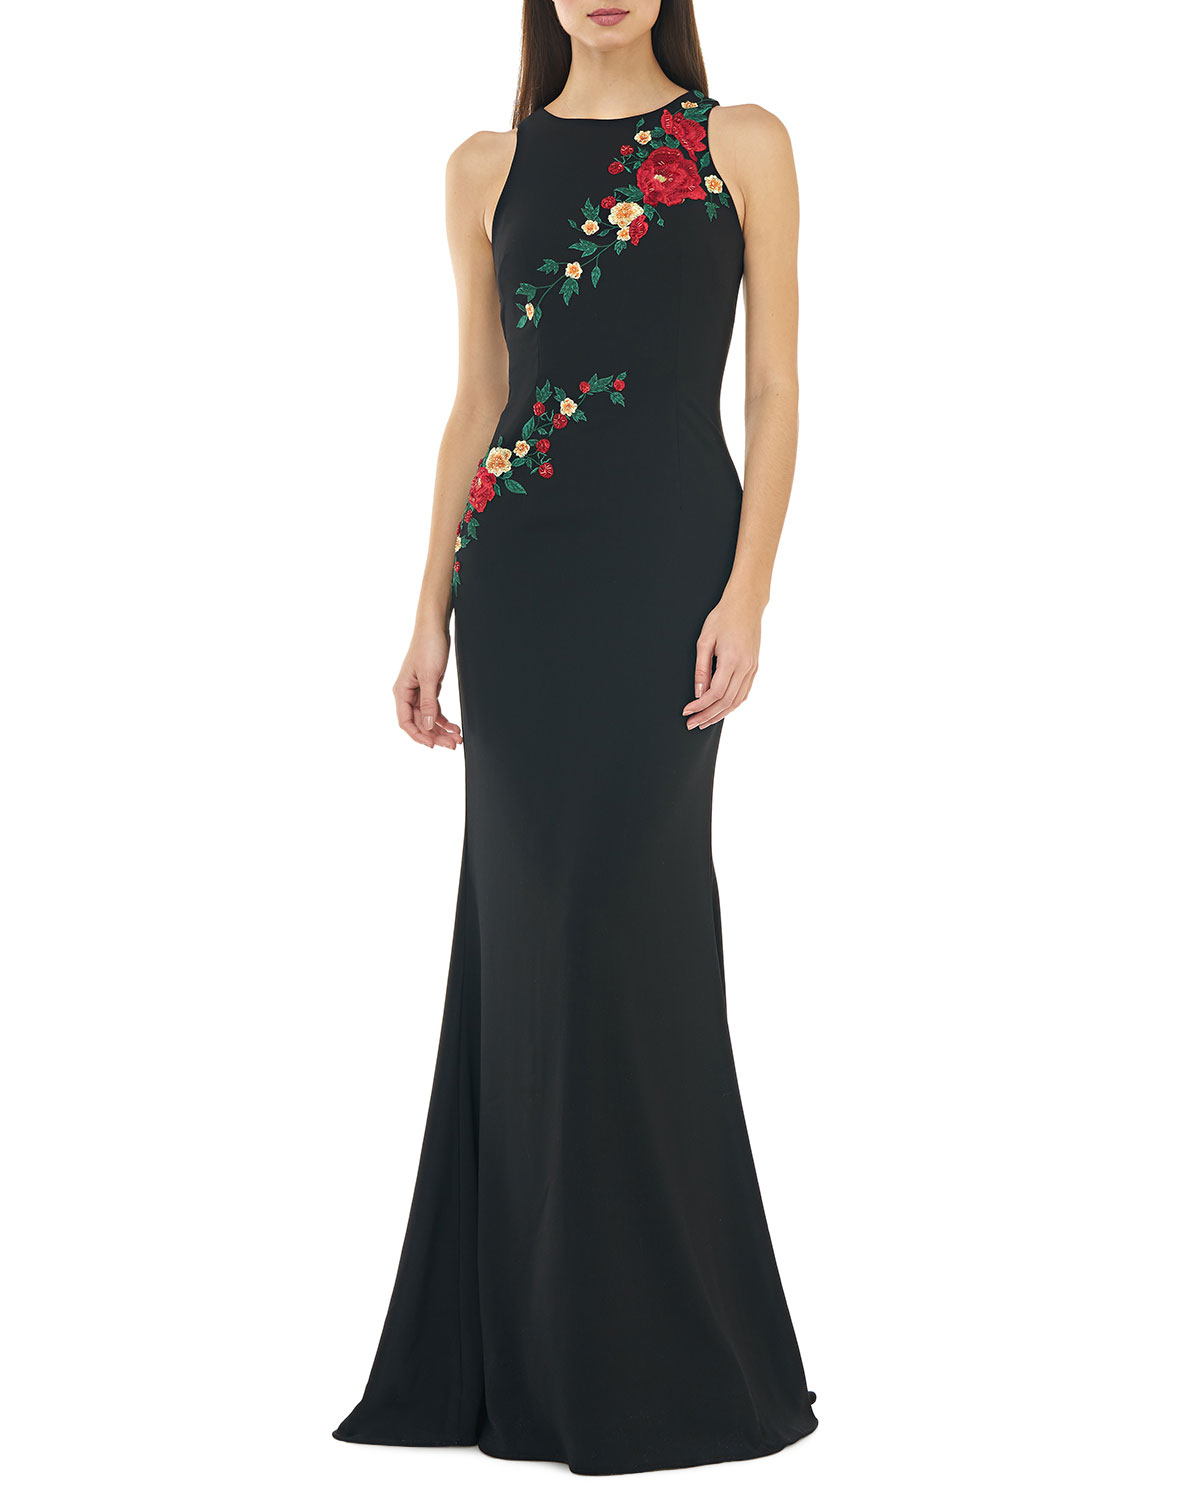 Carmen Marc Valvo Infusion Sleeveless Crepe Mermaid Gown w/ Multi Floral Embroidery